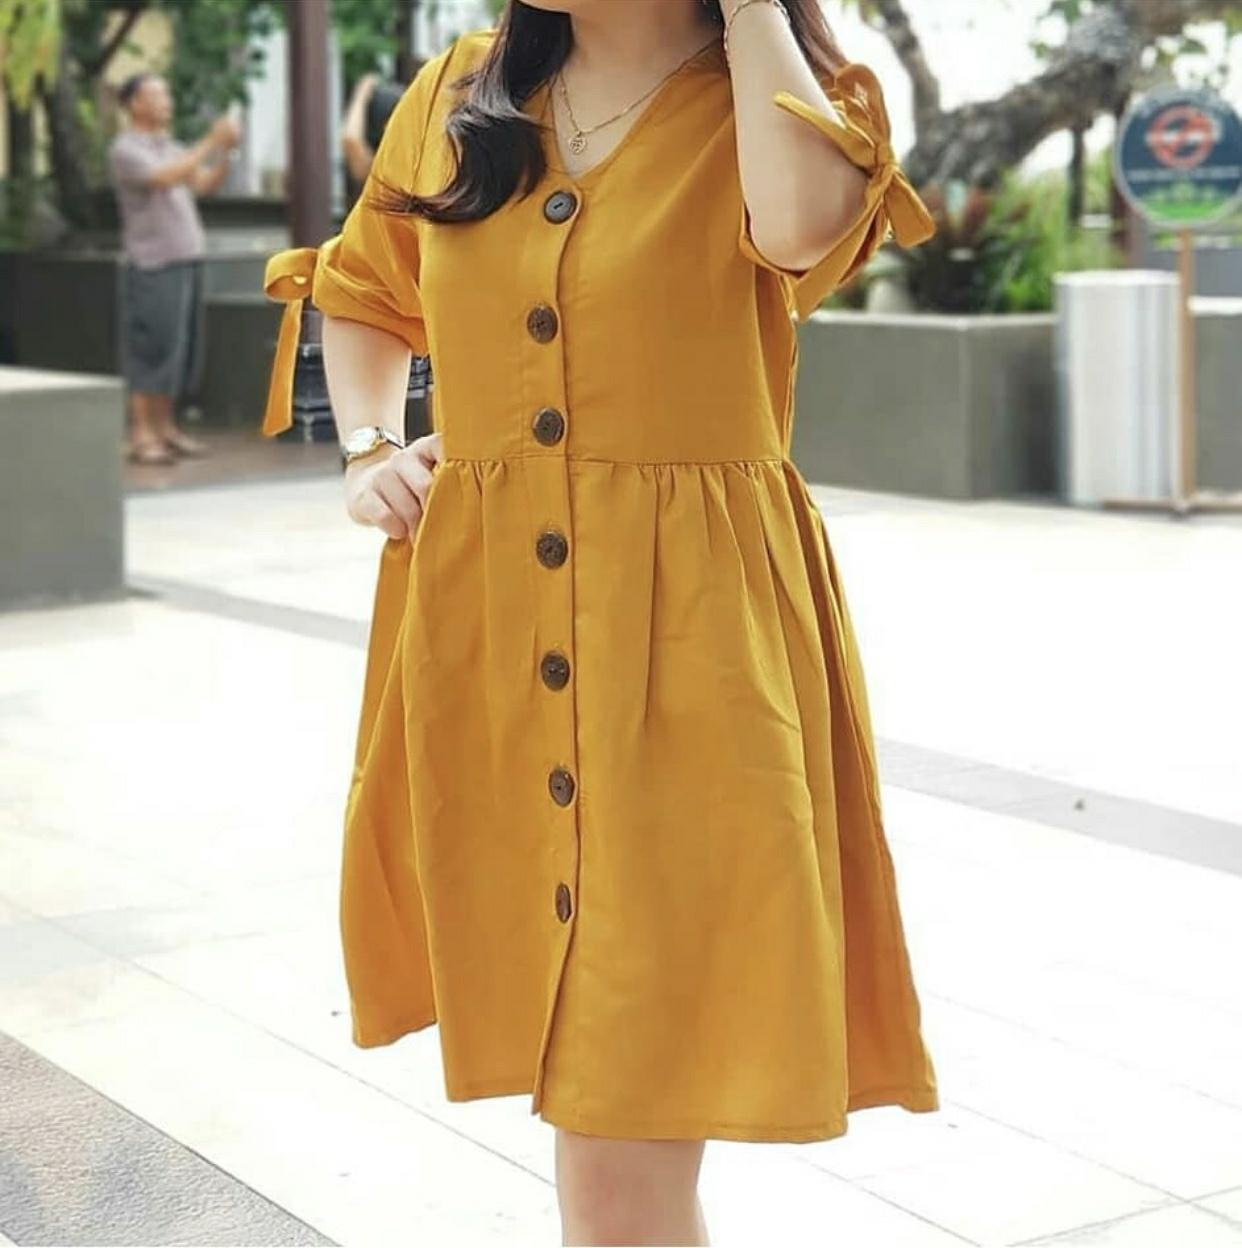 Hoziro - Baju / Dress / Atasan / Blouse / Long Dress / Midi Dress Wanita Aqilla Bahan Twistcone